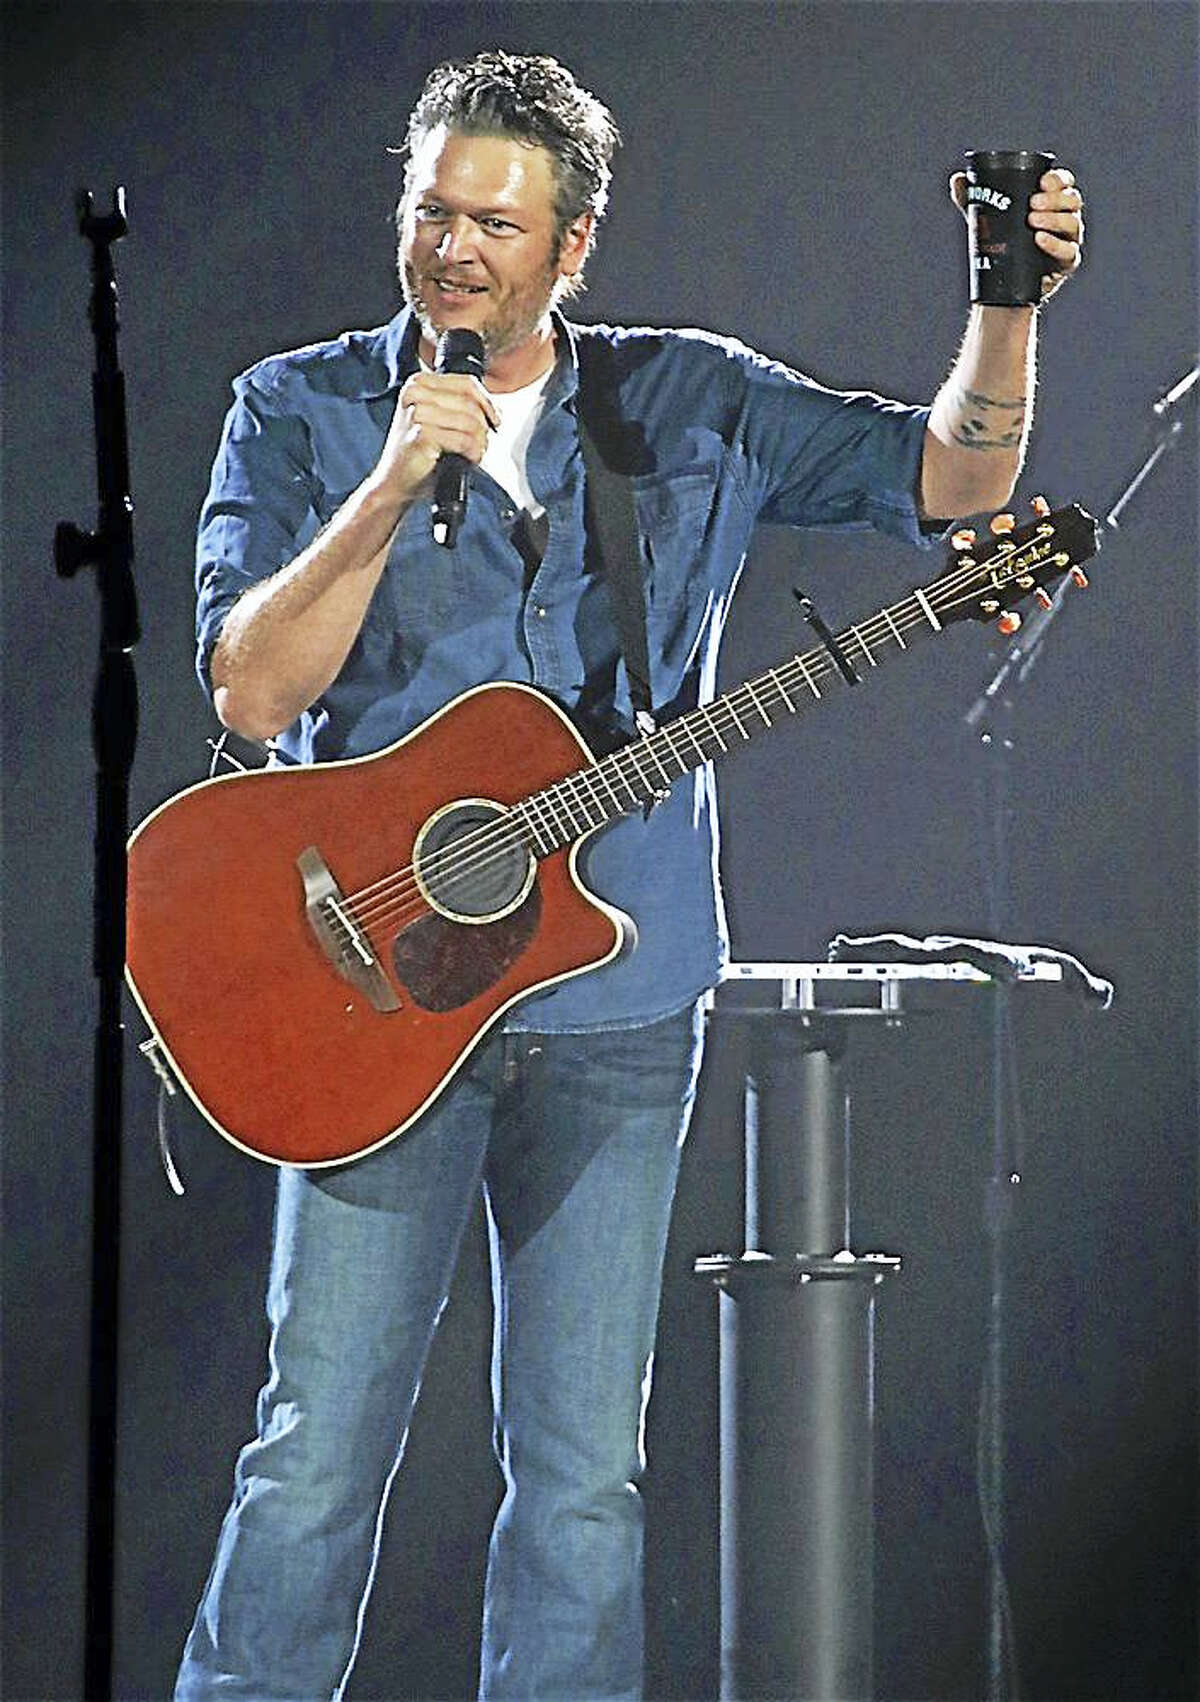 """Photo by John AtashianCountry music singer, songwriter, and television personality Blake Shelton is shown toasting his fans at the XL Center at the start of his concert on Sept. 30. Blake is currently on a U.S. tour in support of his tenth album, """"If I'm Honest""""."""